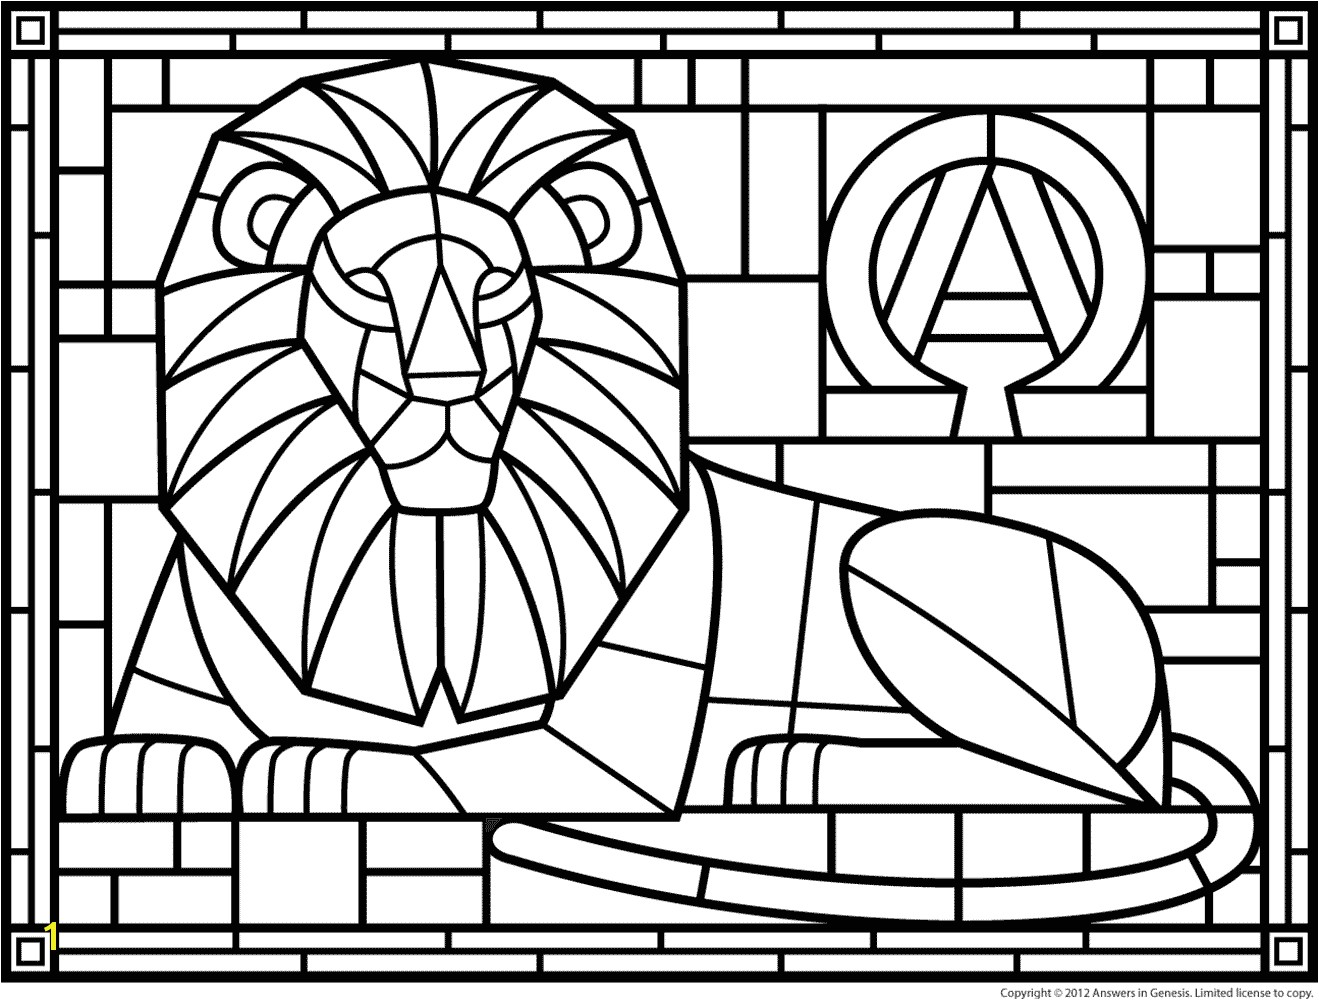 18luxury Stained Glass Coloring Books More Image Ideas